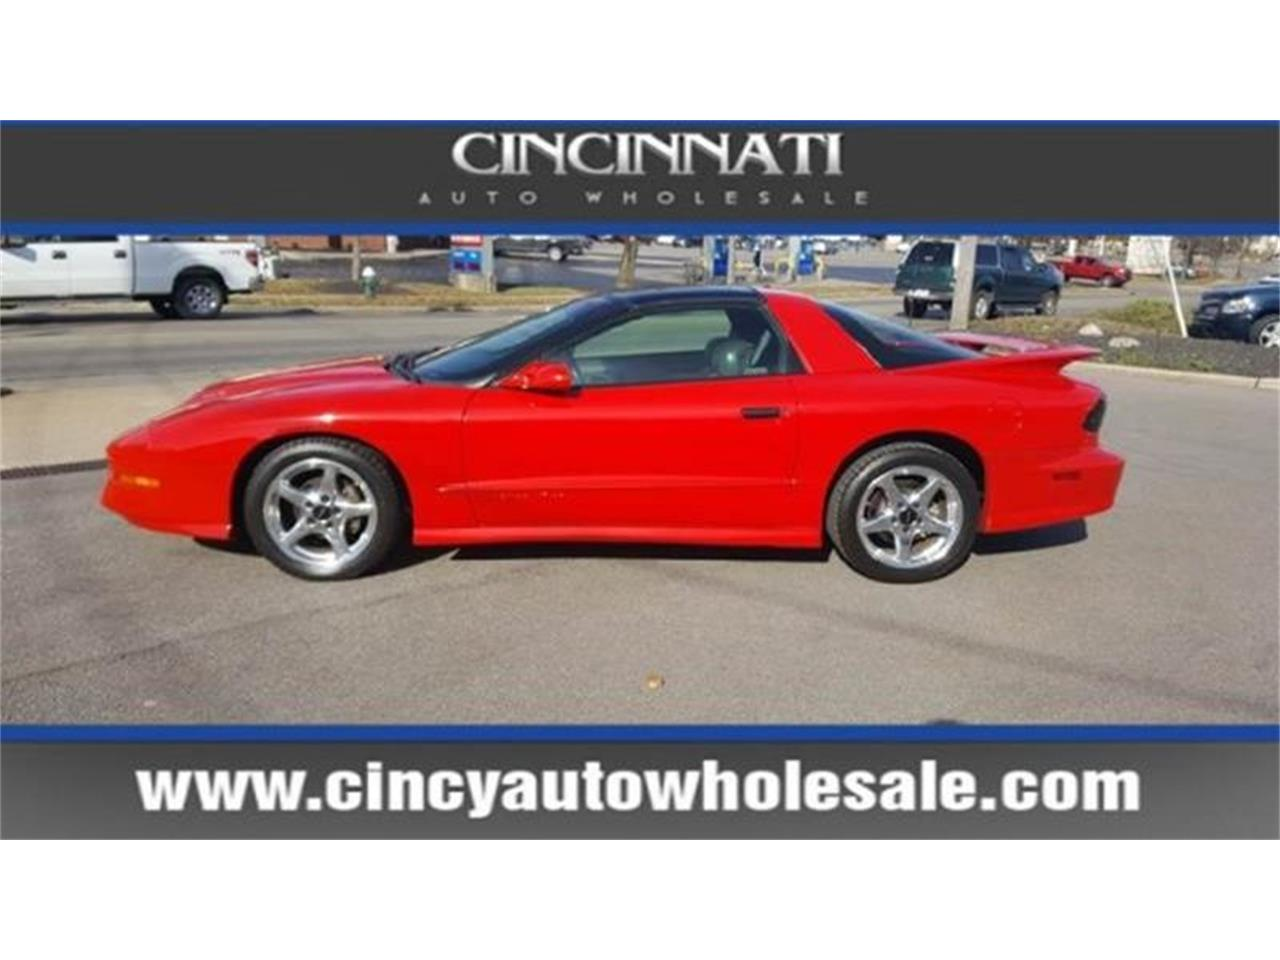 Large Picture of 1997 Pontiac Firebird - $12,900.00 Offered by Cincinnati Auto Wholesale - MD9T